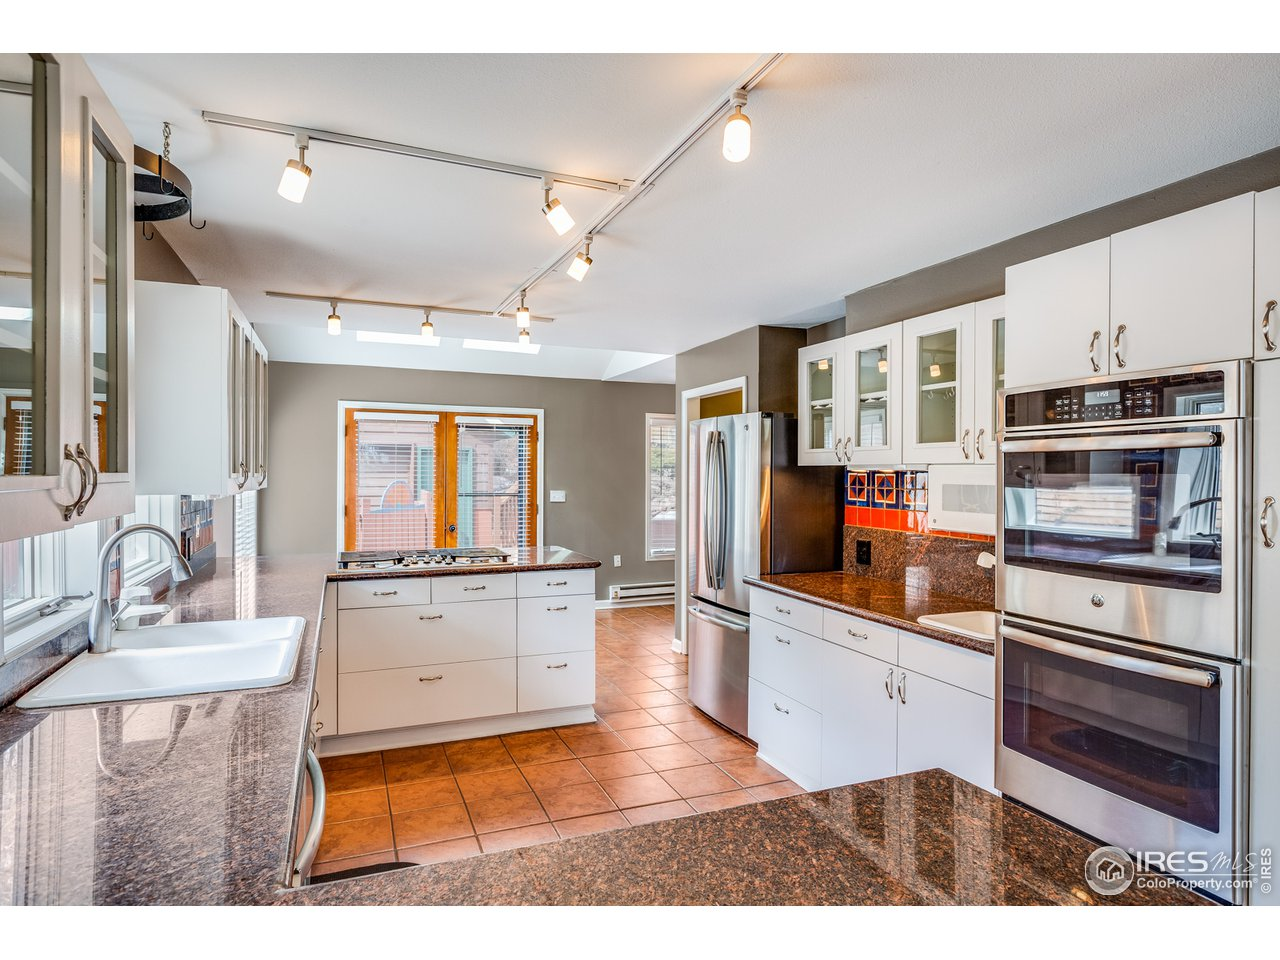 Newer stainless steel appliances